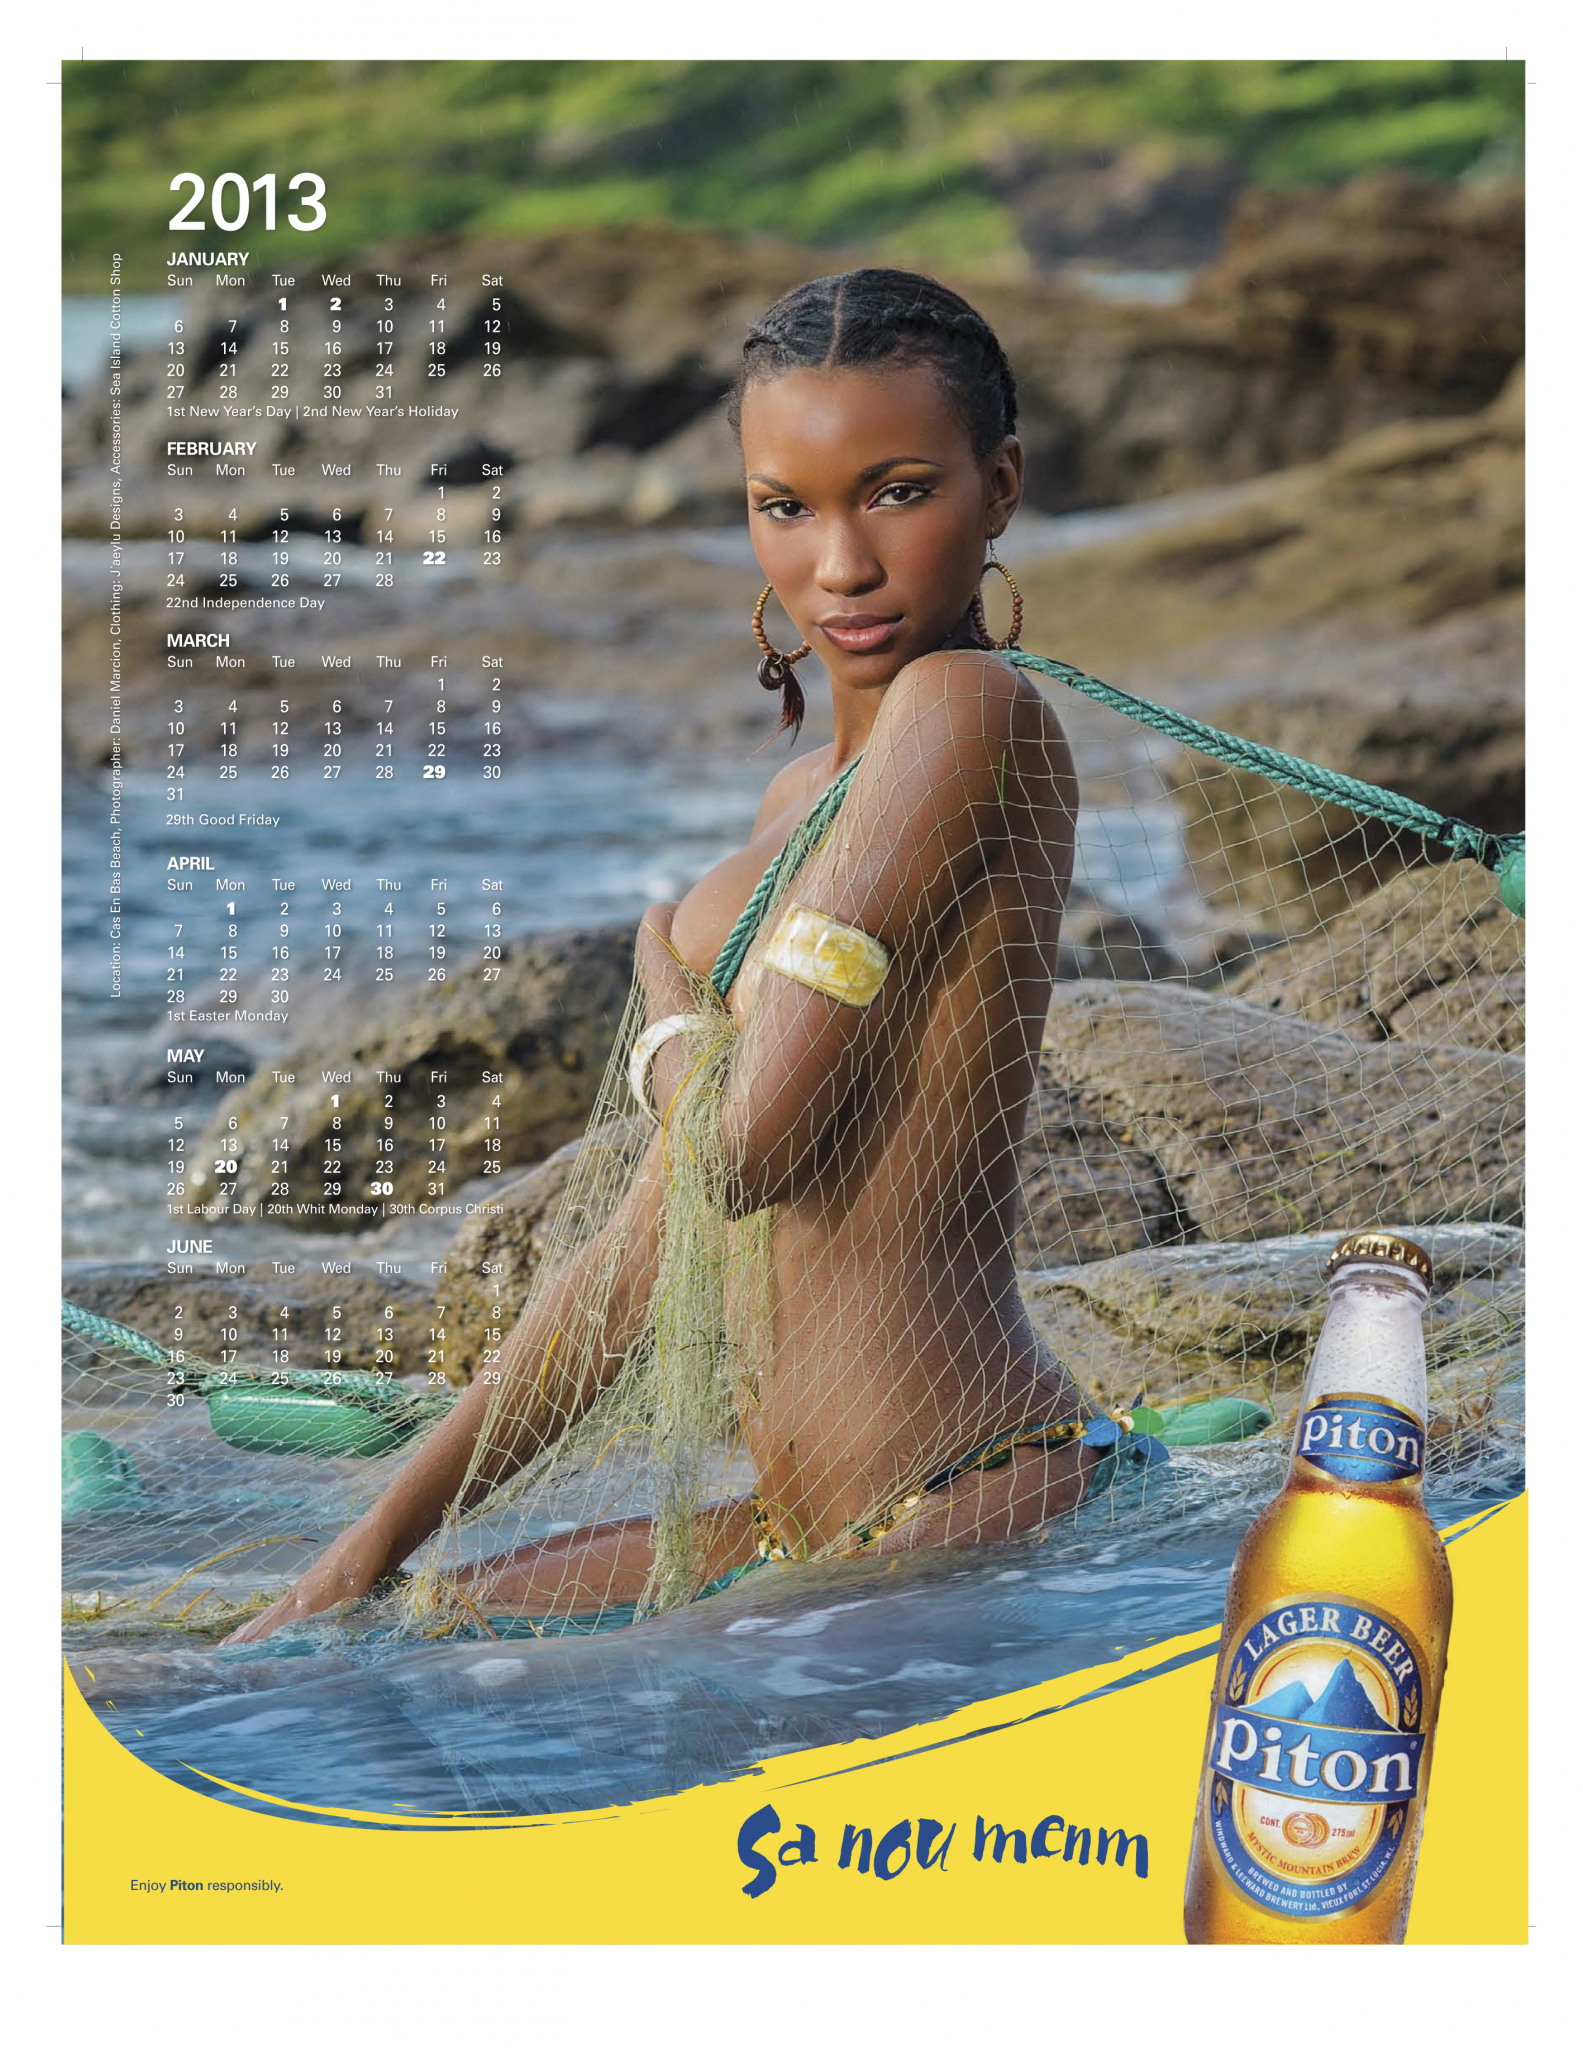 Take a peek at Piton Calendar Girl for 2013 : Meet Tangie (St Lucia News)